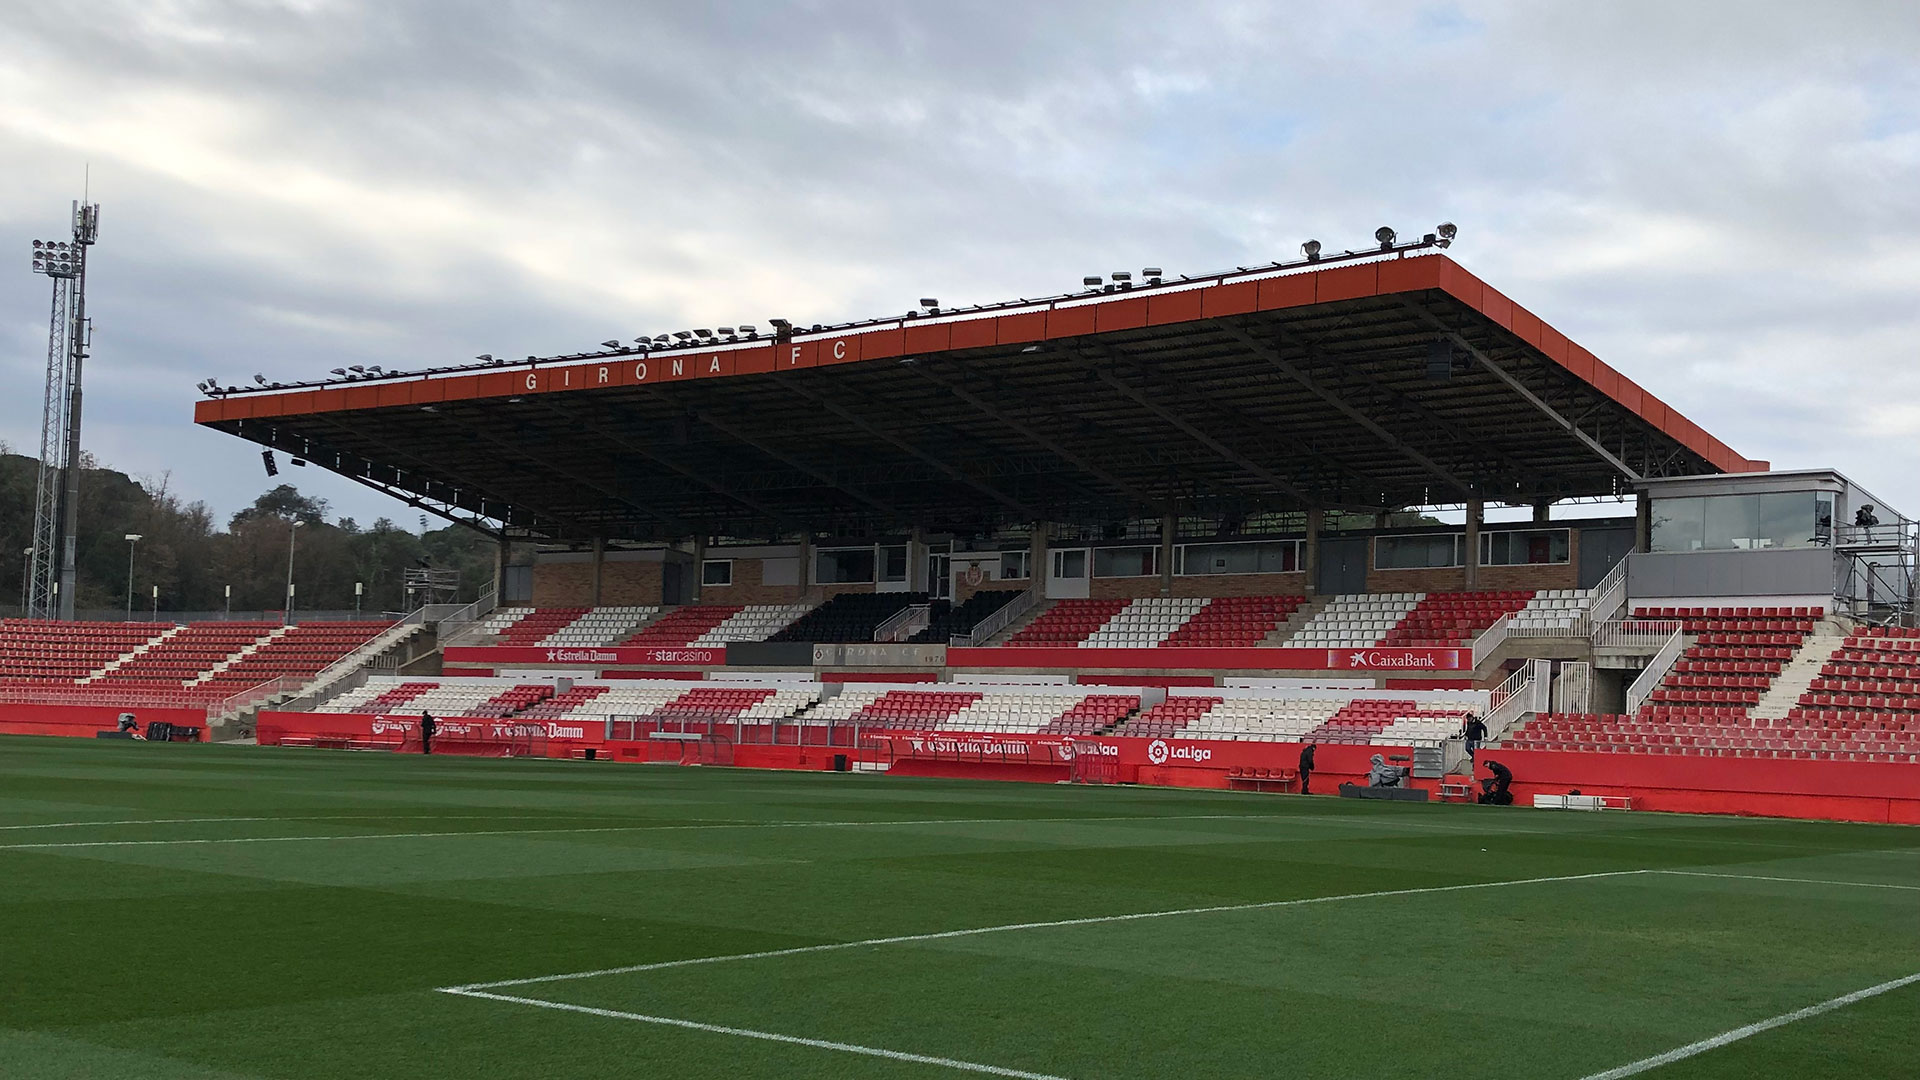 Billets pour le match Girona FC – Athletic Club